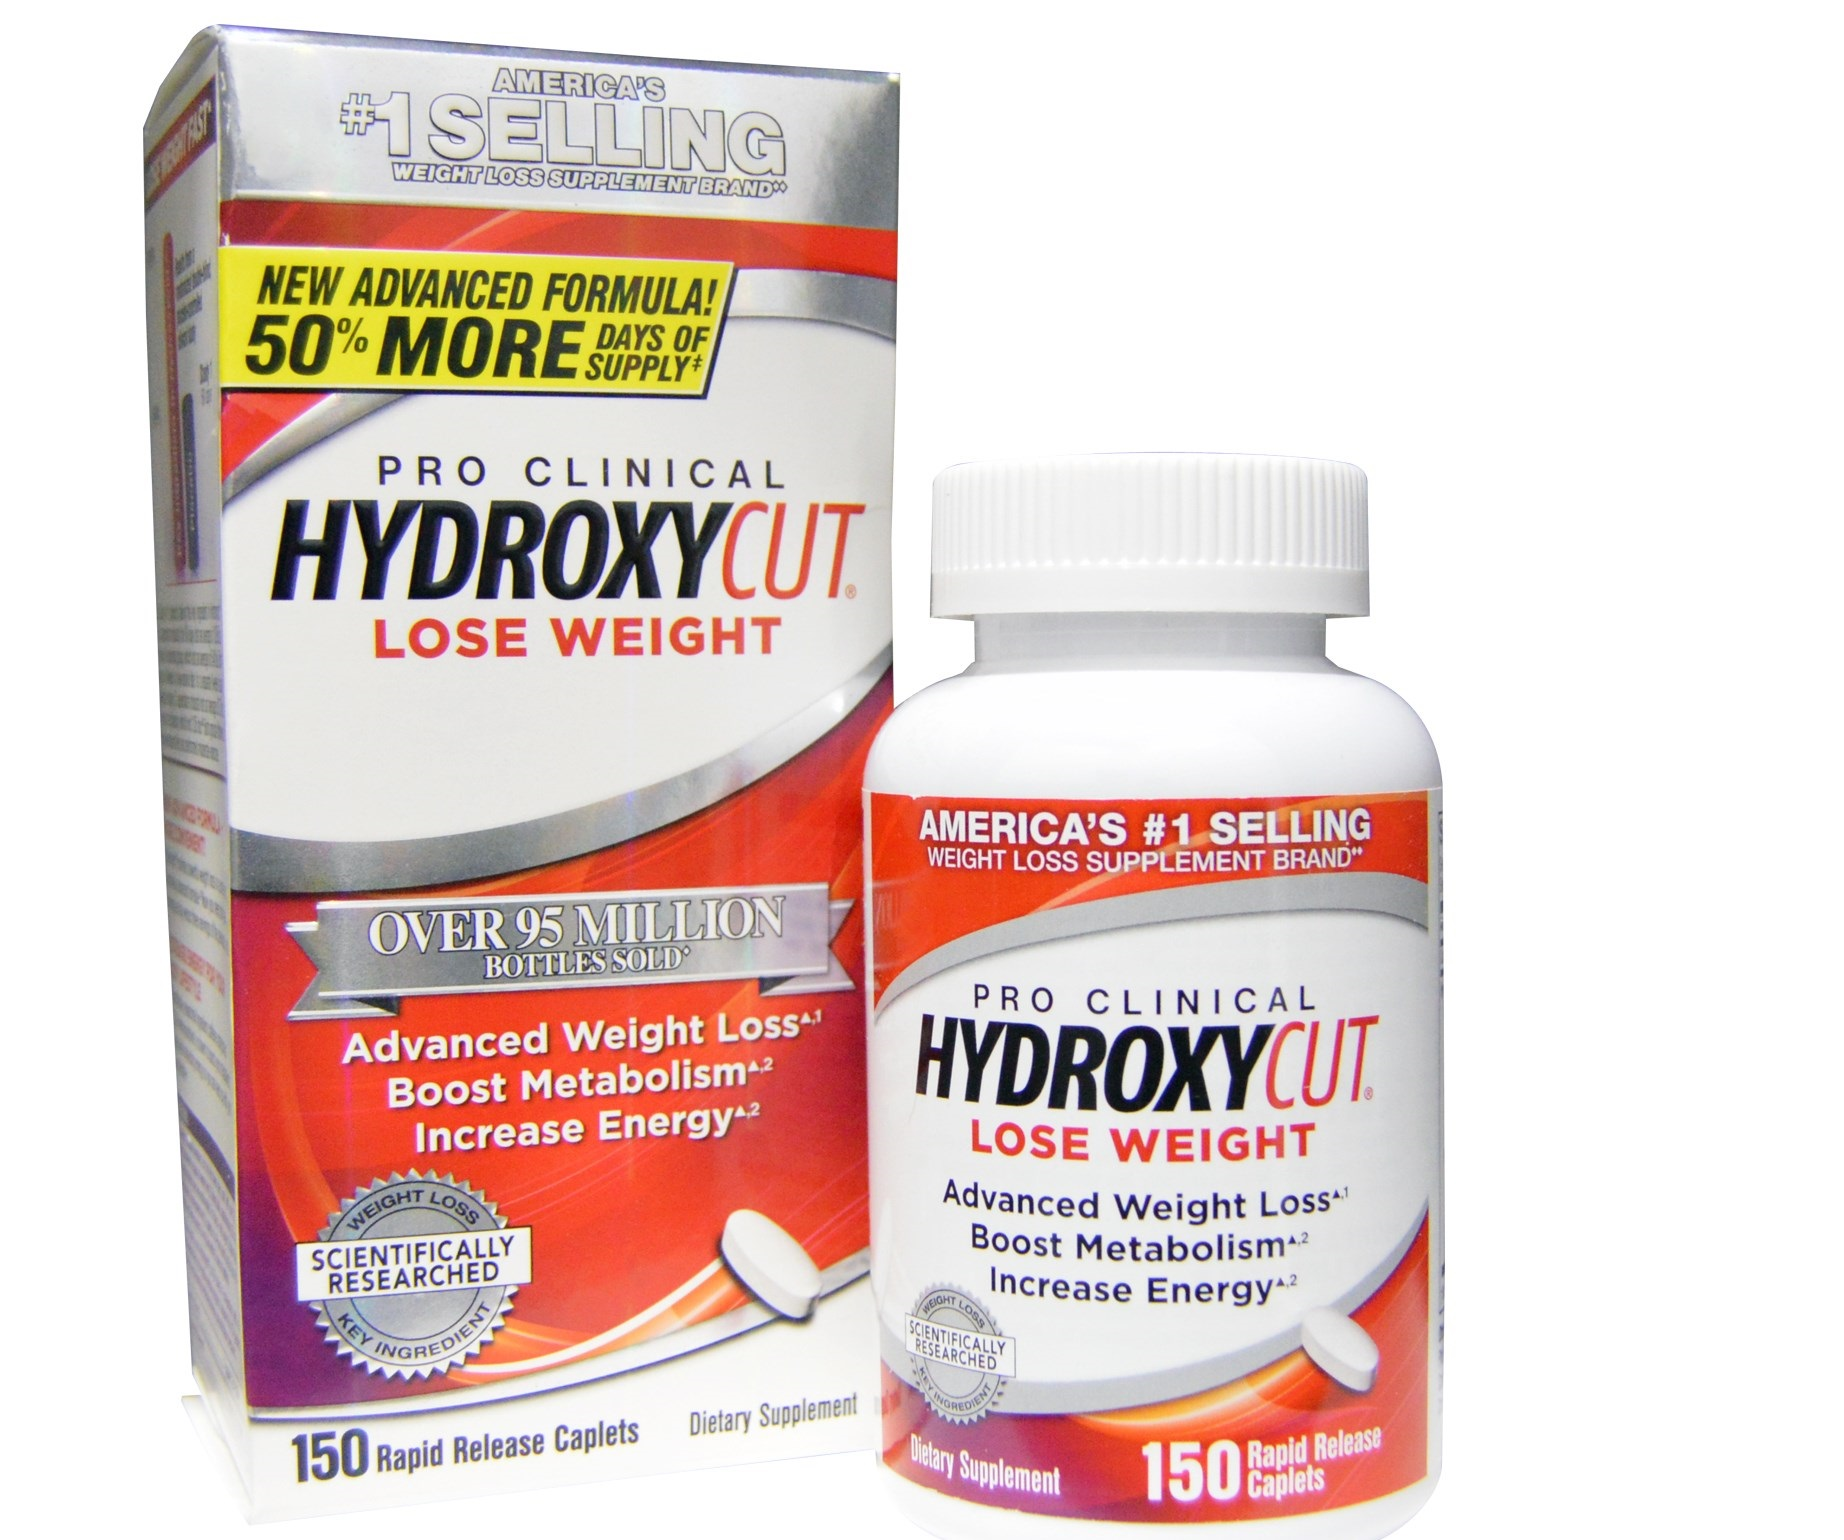 The best hydroxycut product